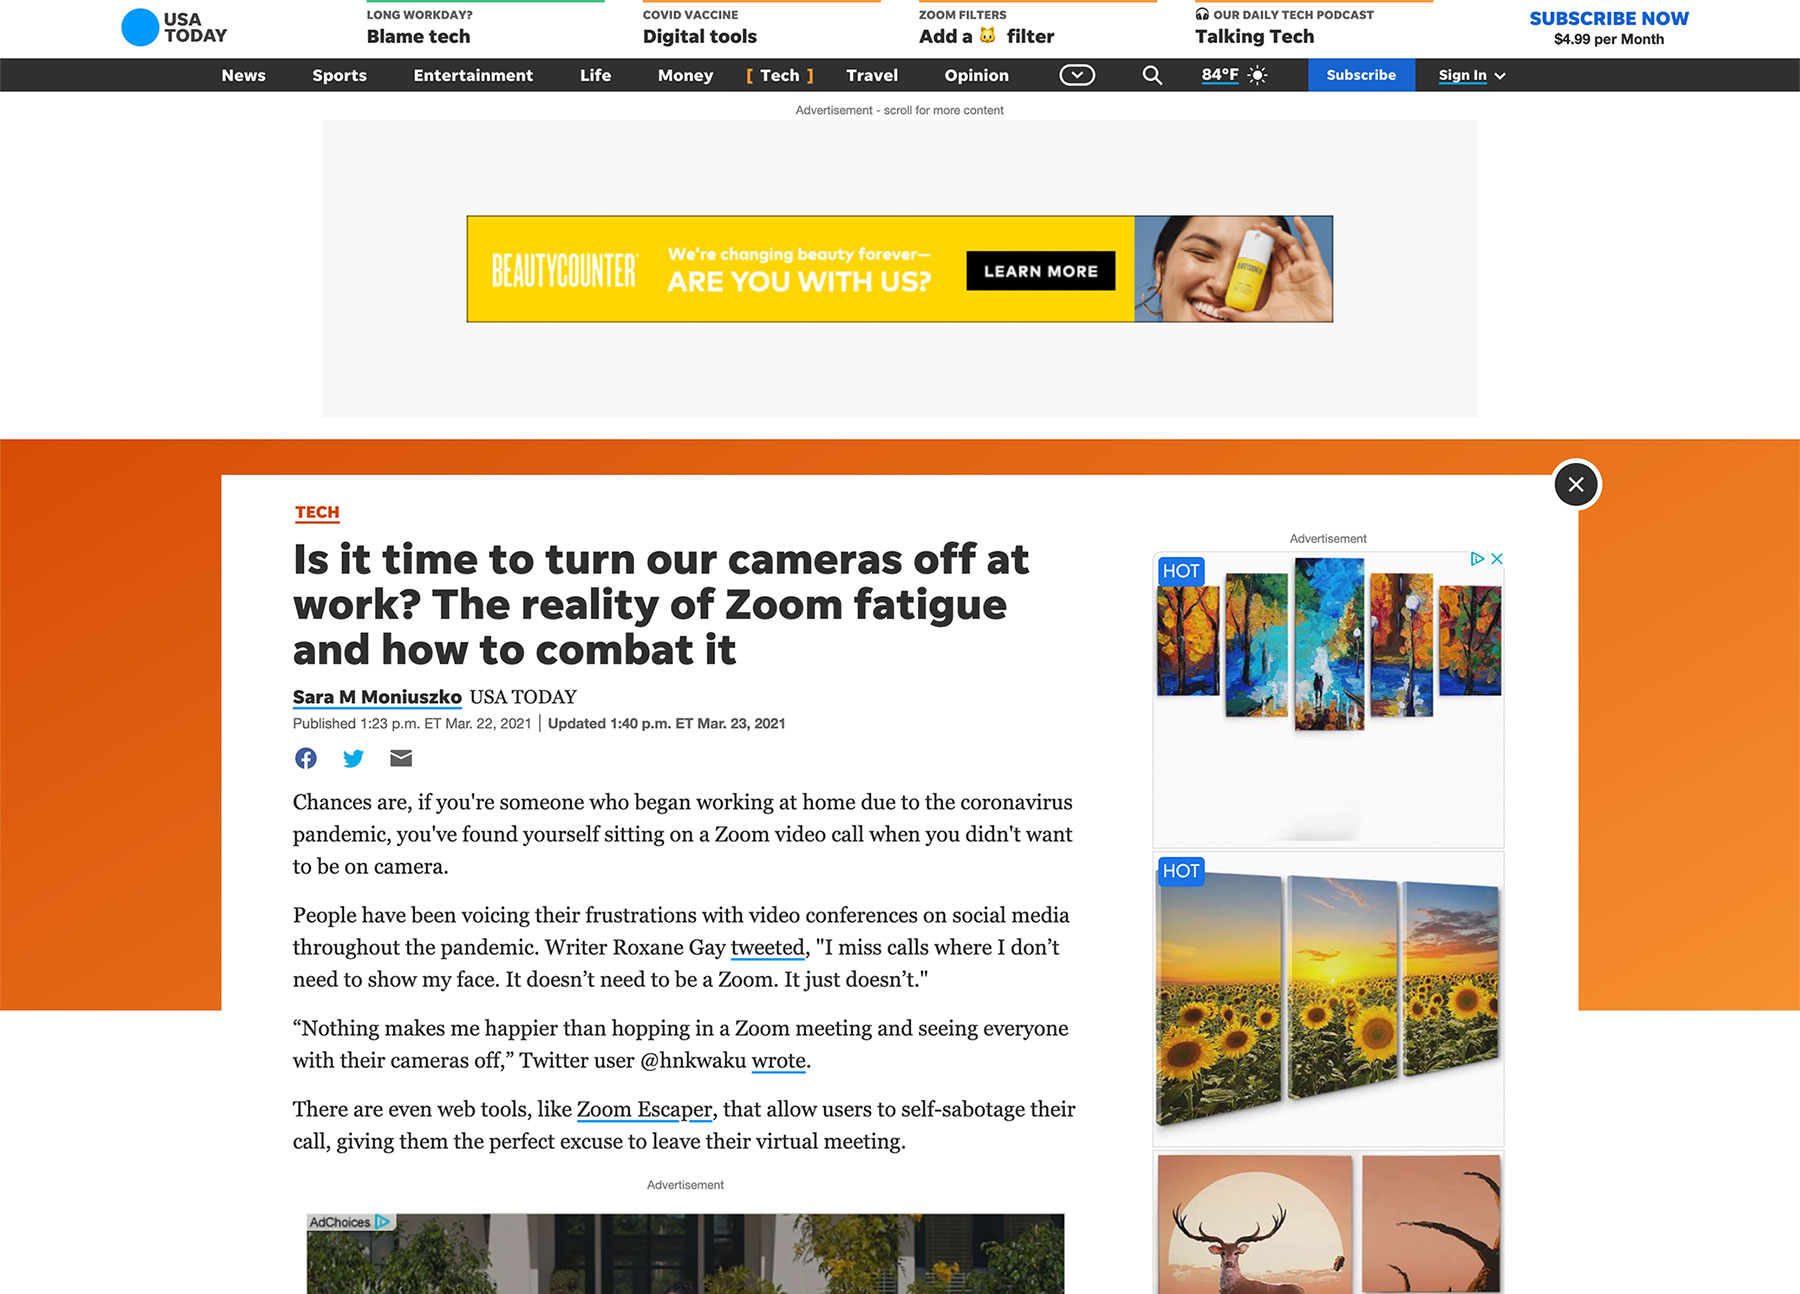 Article: Is it time to turn our cameras off at work? The reality of Zoom fatigue and how to combat it